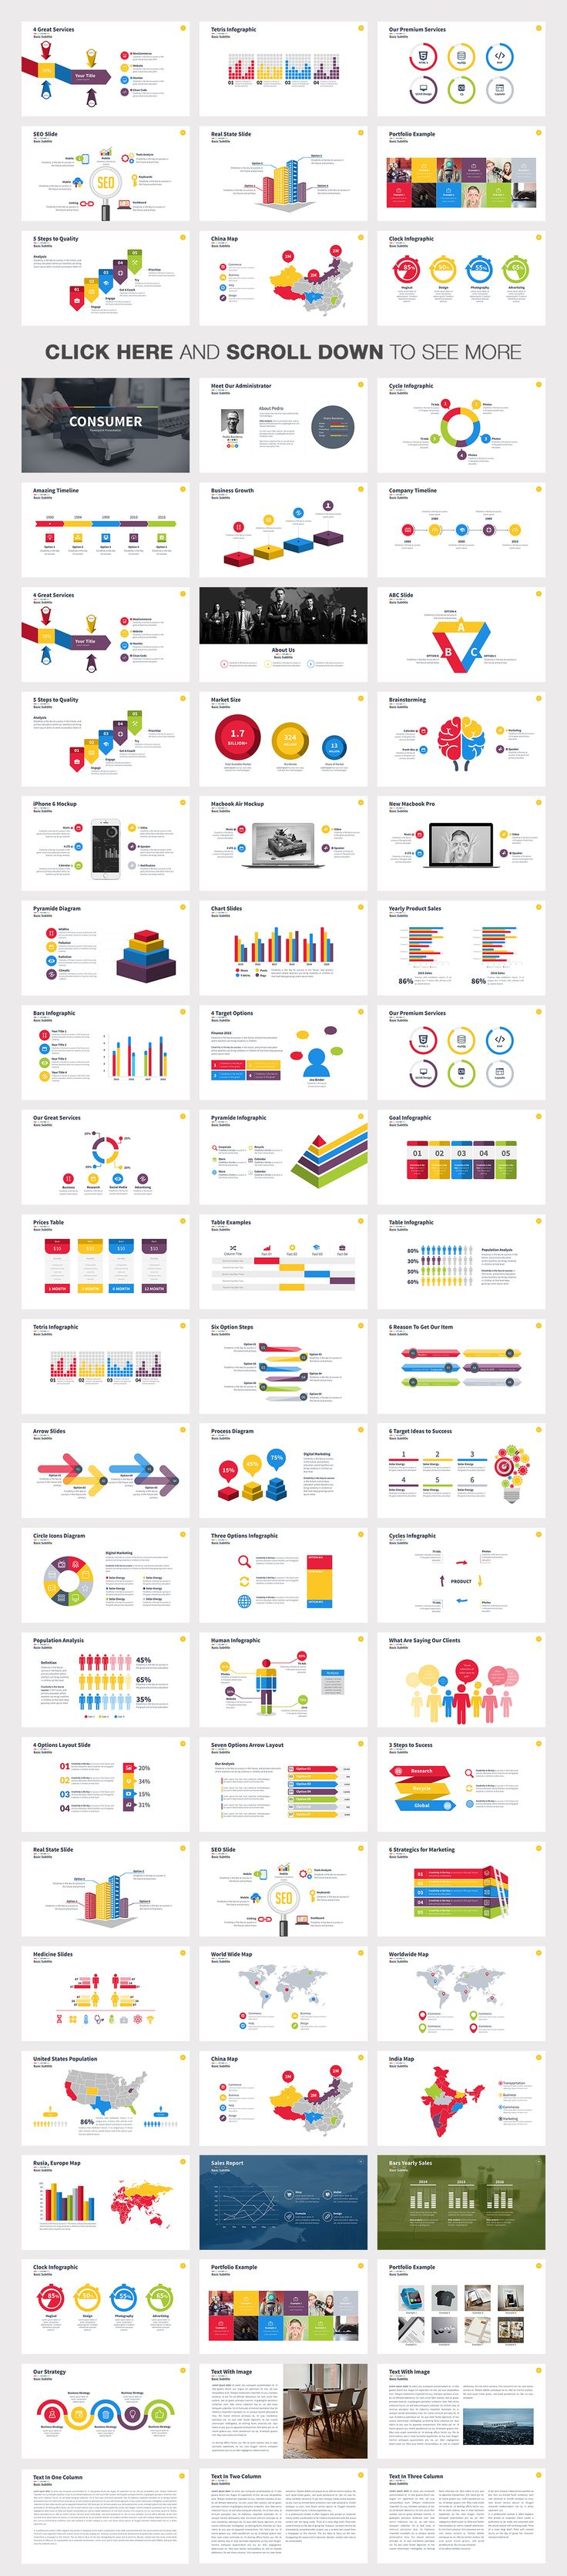 Consumer Powerpoint Template by Slidedizer on Creative Market